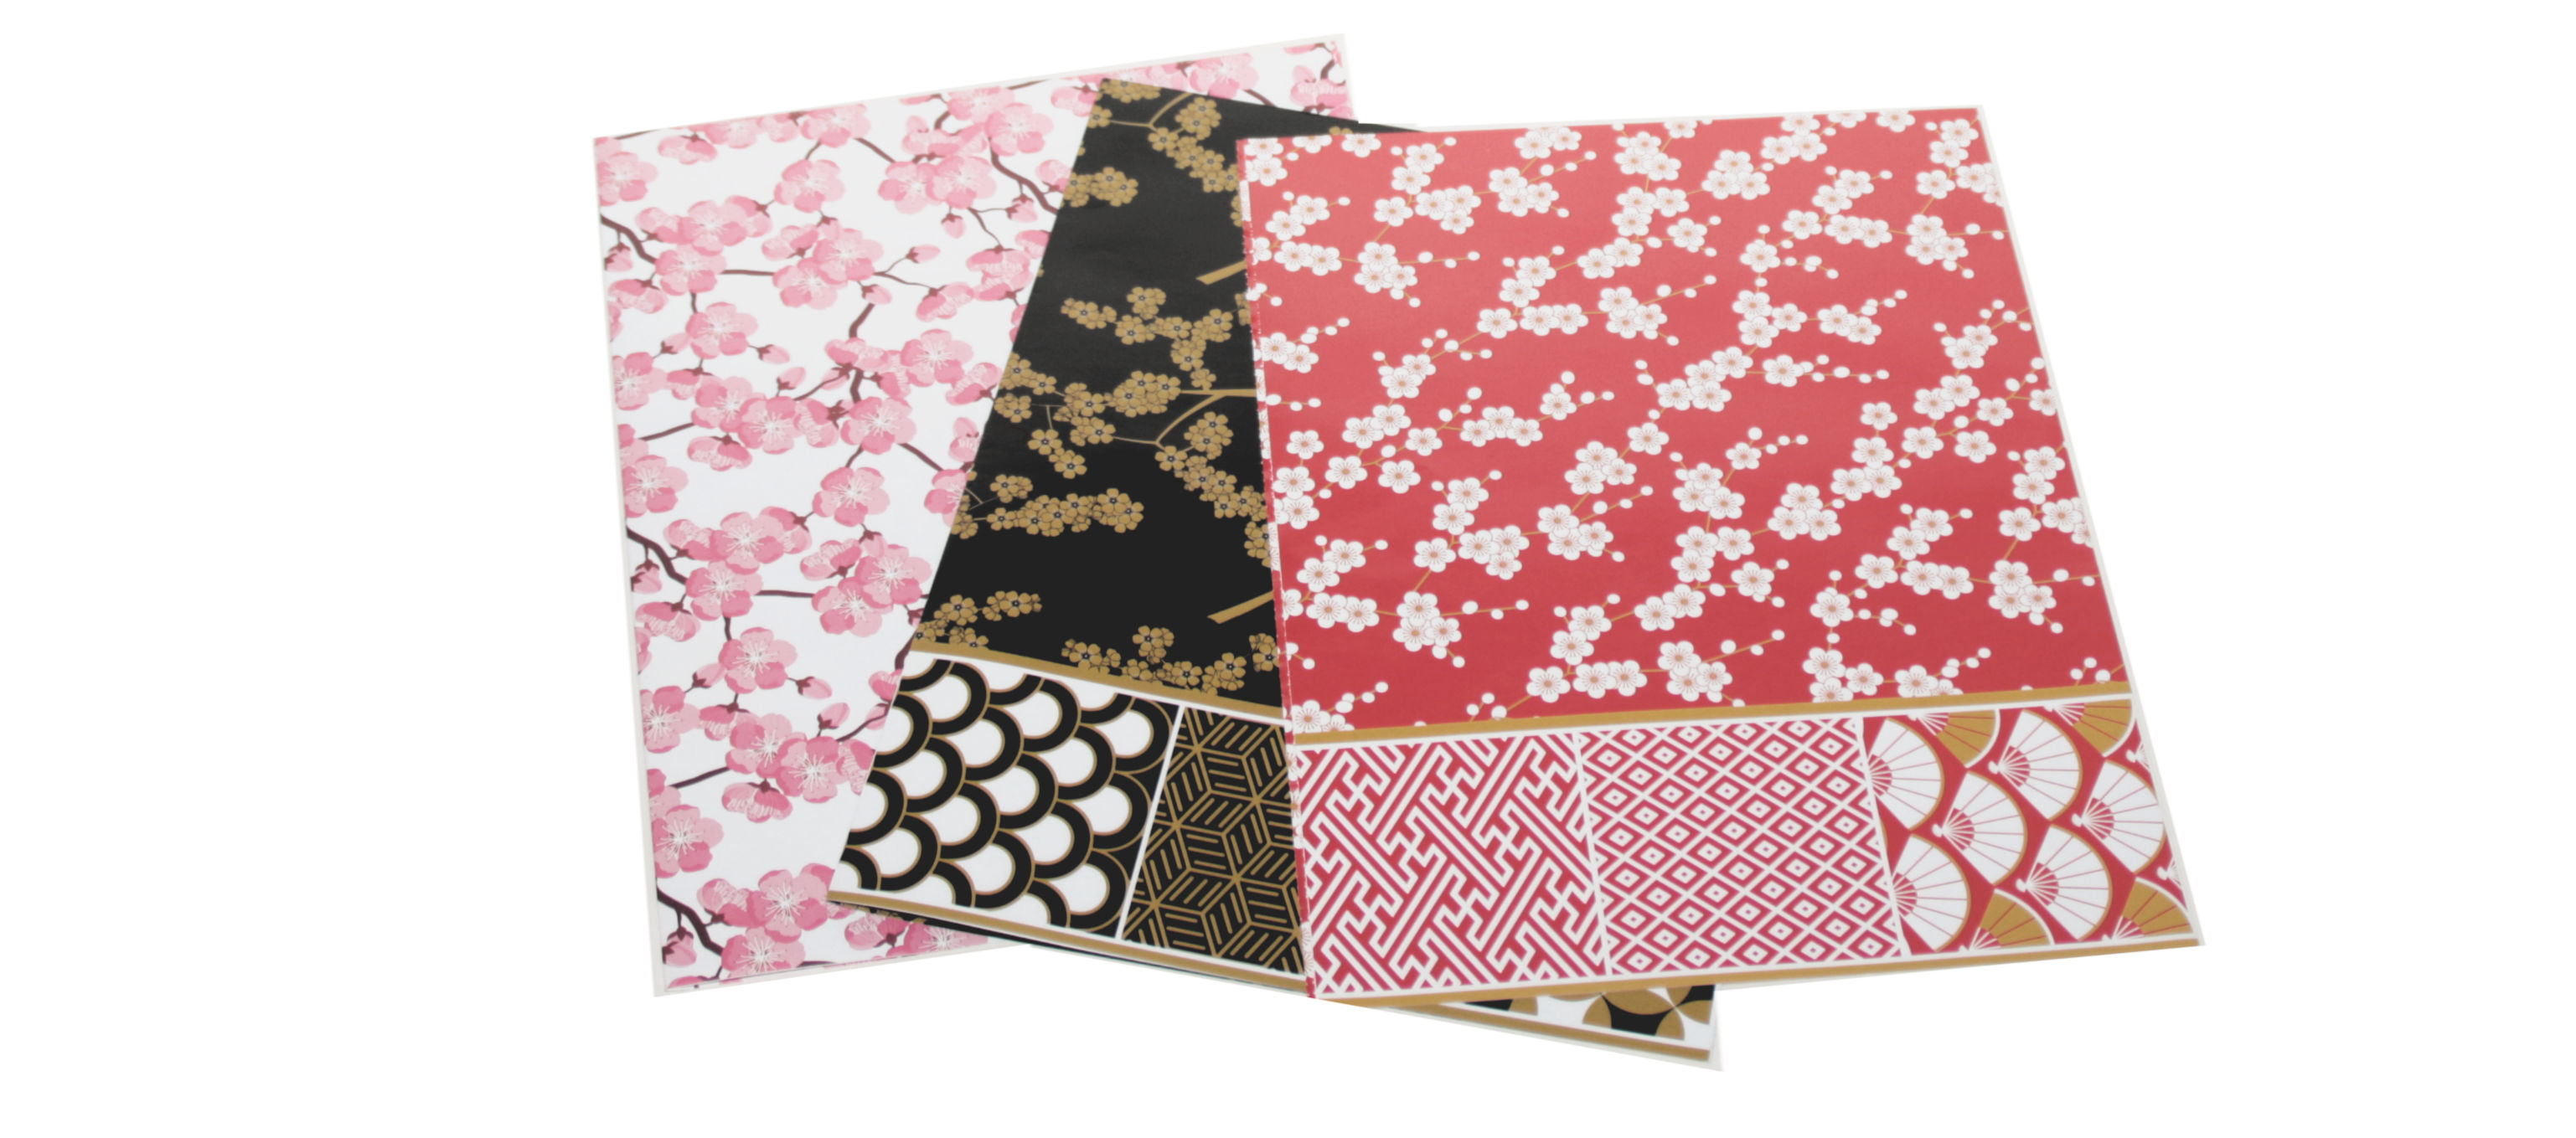 Sample pages from Tuttle's Cherry Blossoms Gift Wrap at Castle View Academy